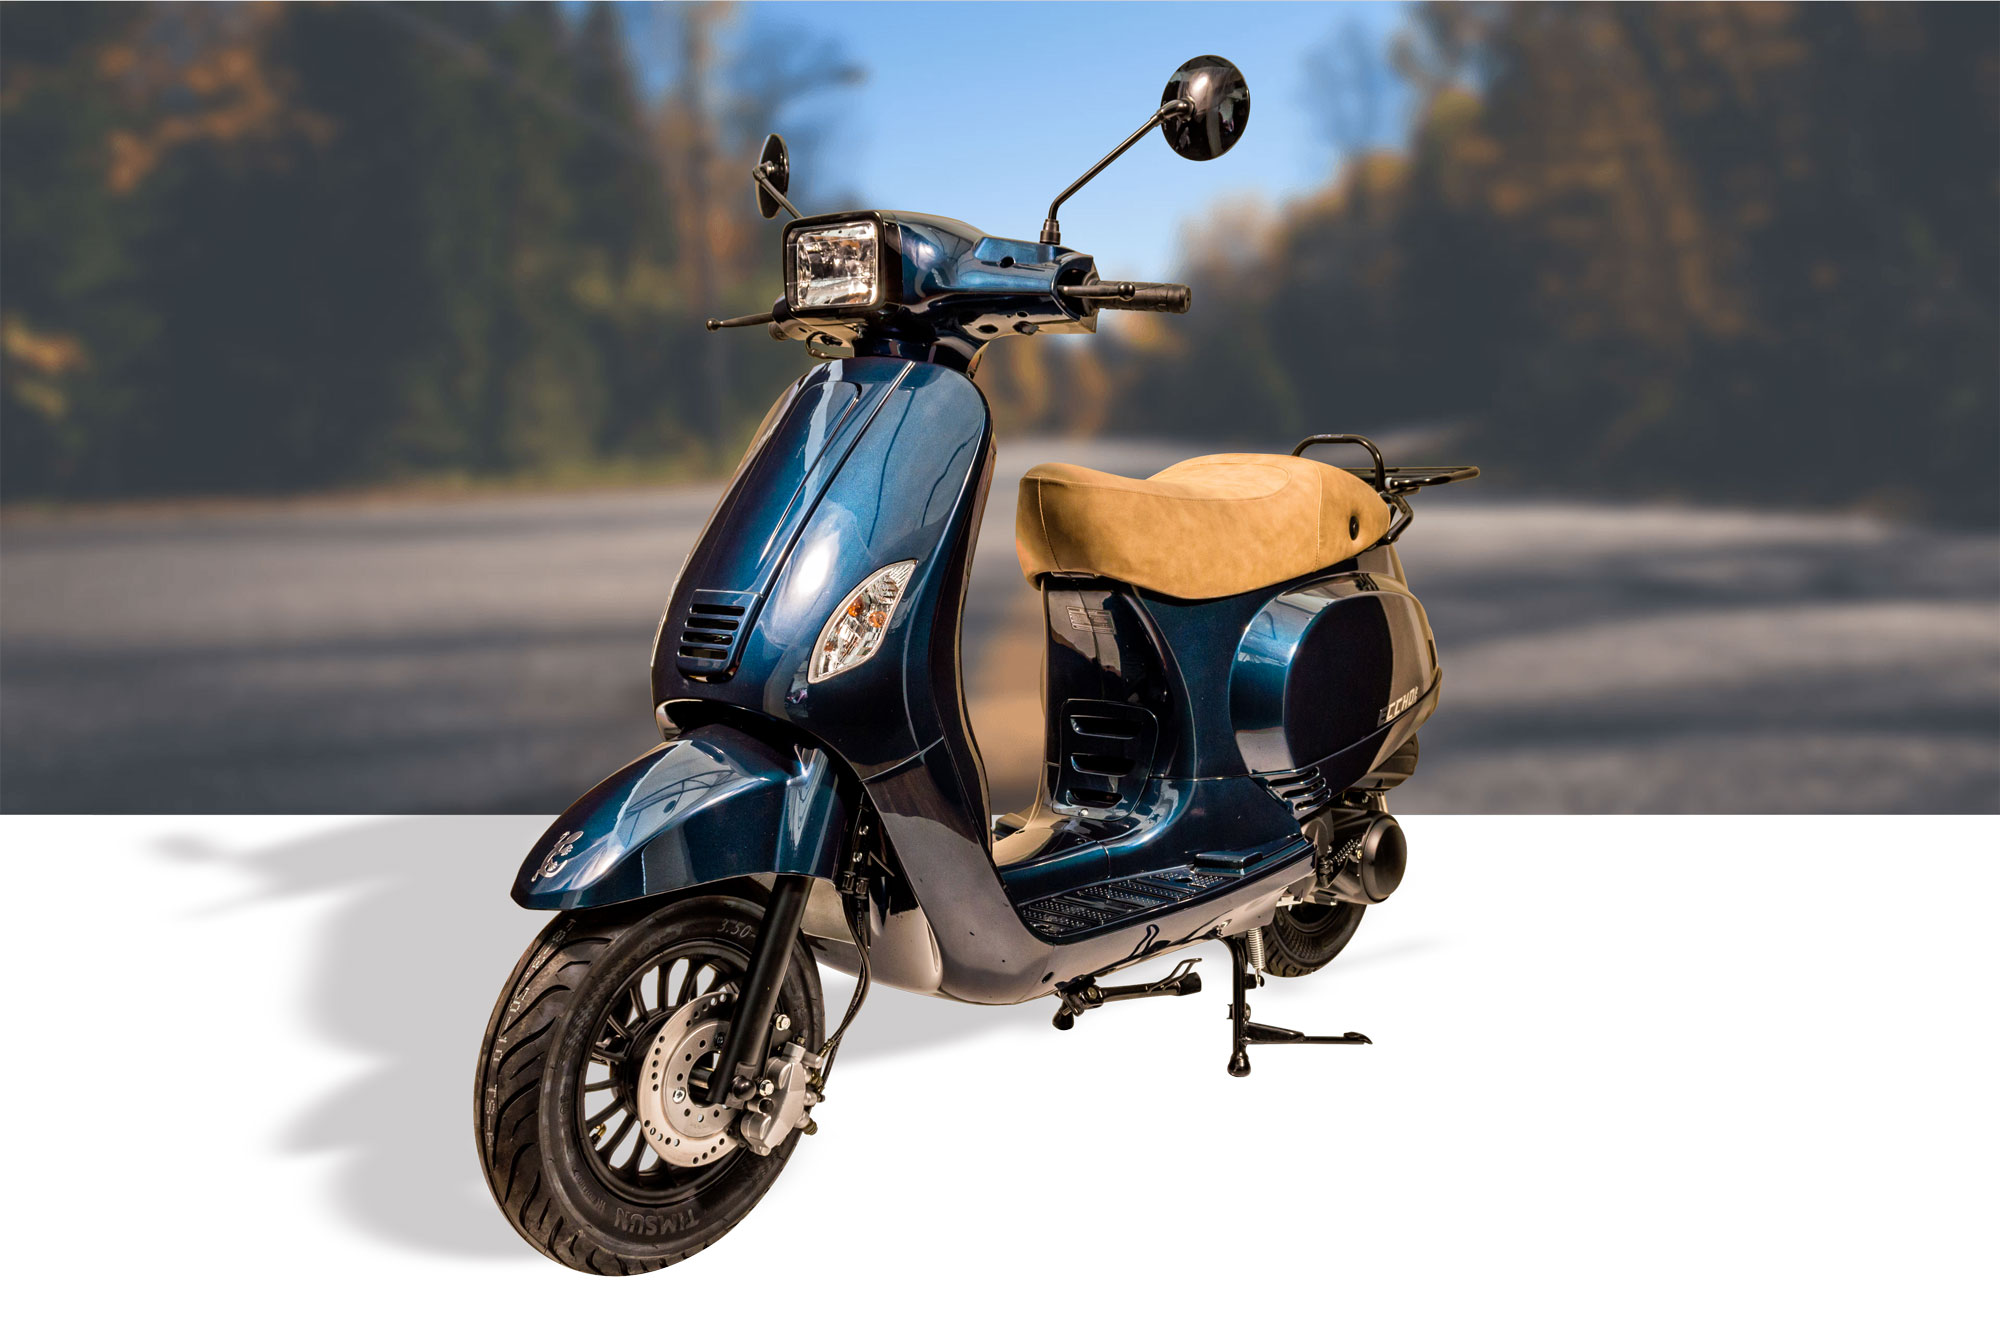 SCOOTER-125-ECCHO-VPX-SL-09